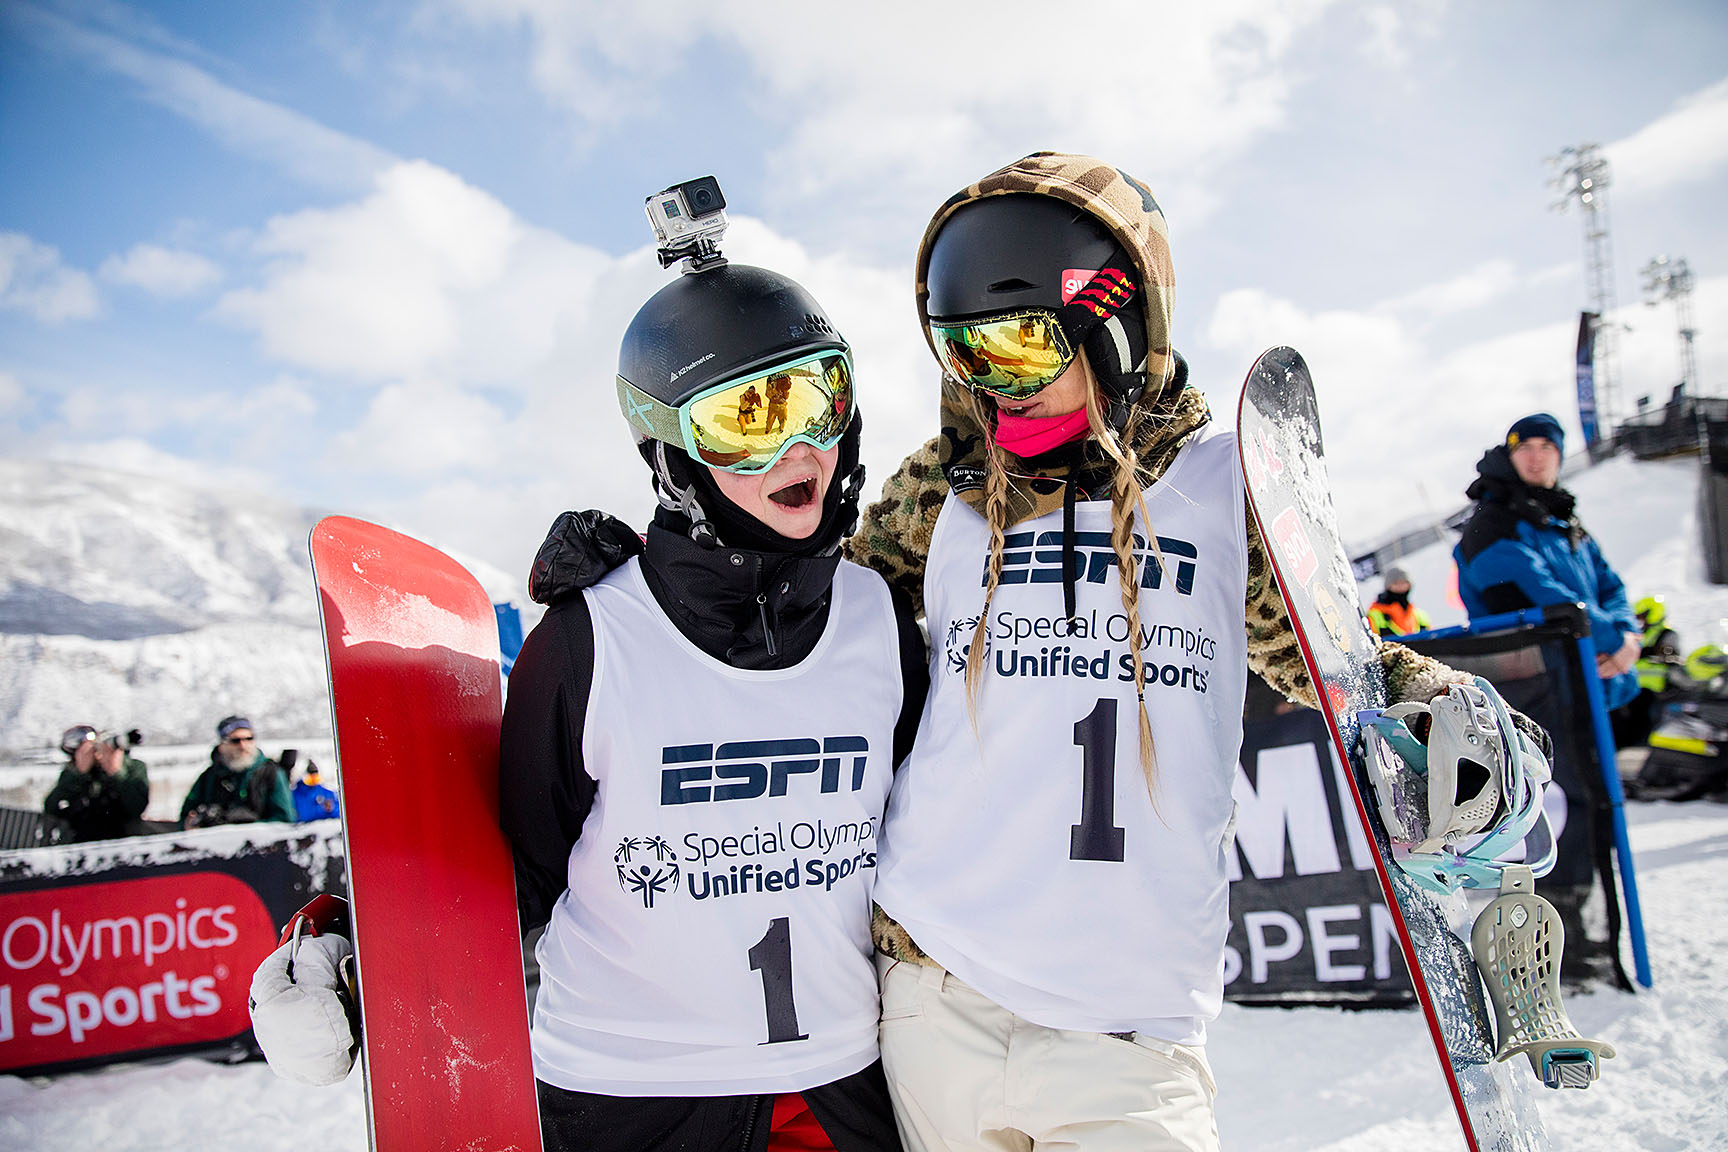 Special Olympics Unified Snowboarding